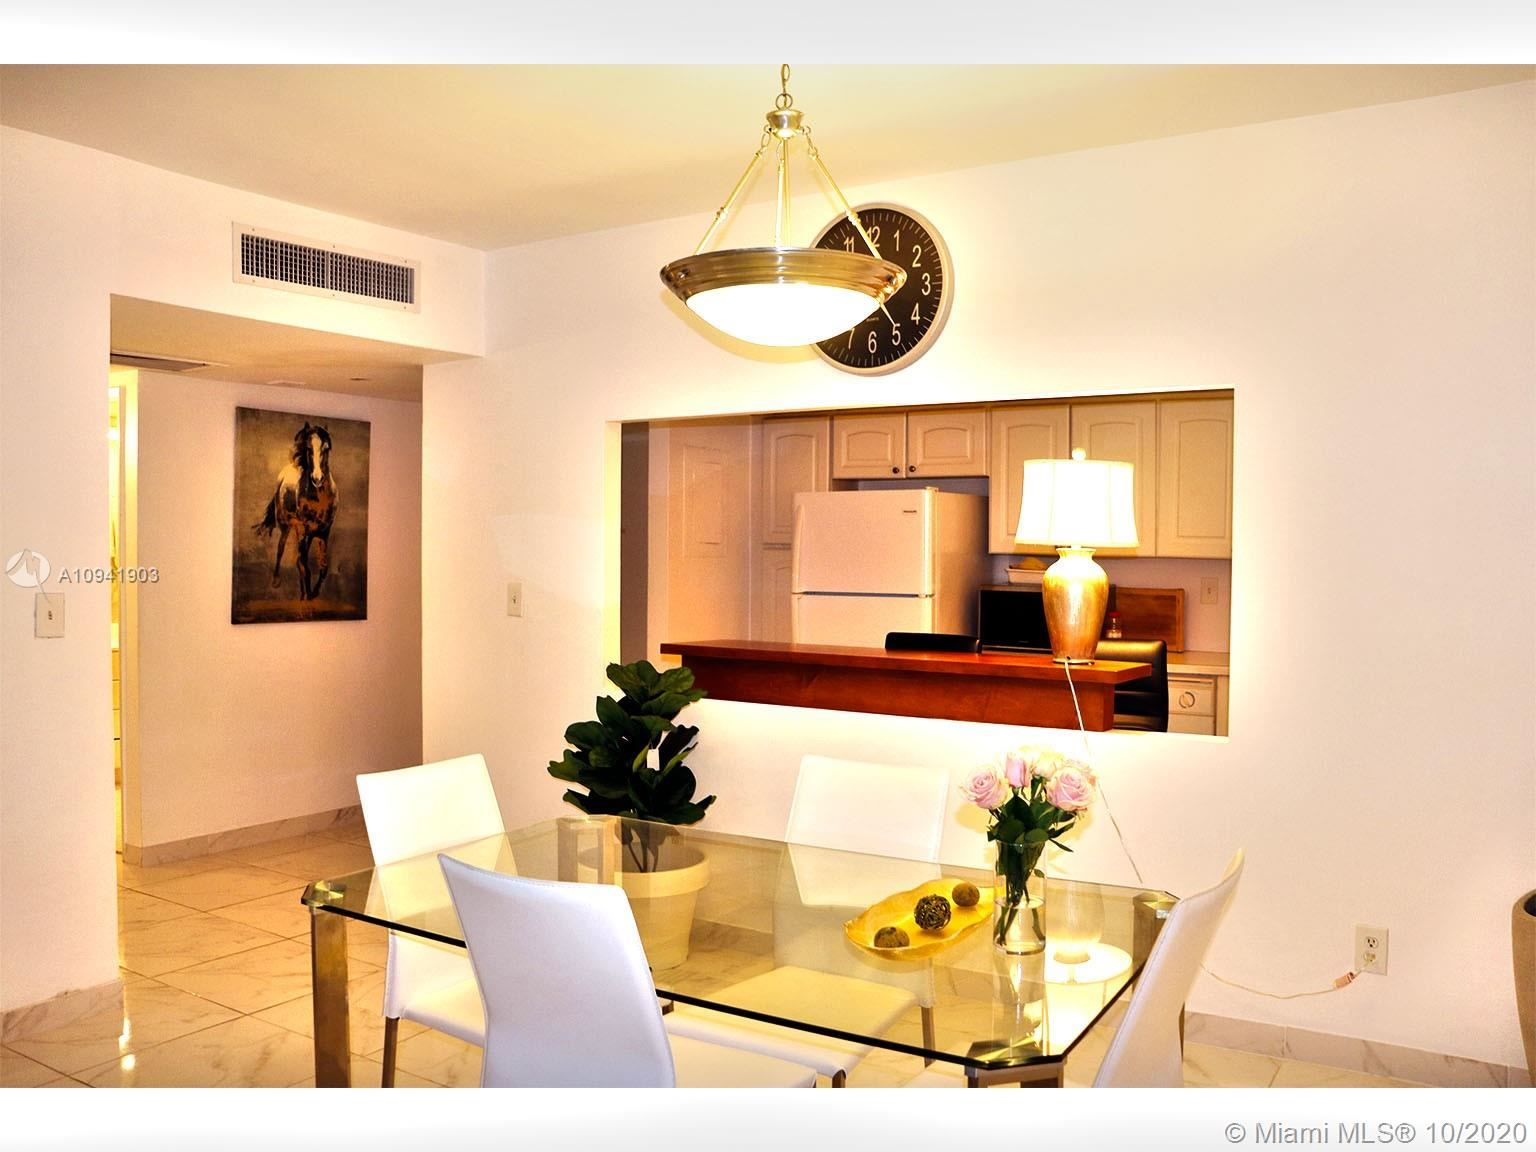 19390 Collins Ave #512, Sunny Isles, FL 33160 - #: A10941903